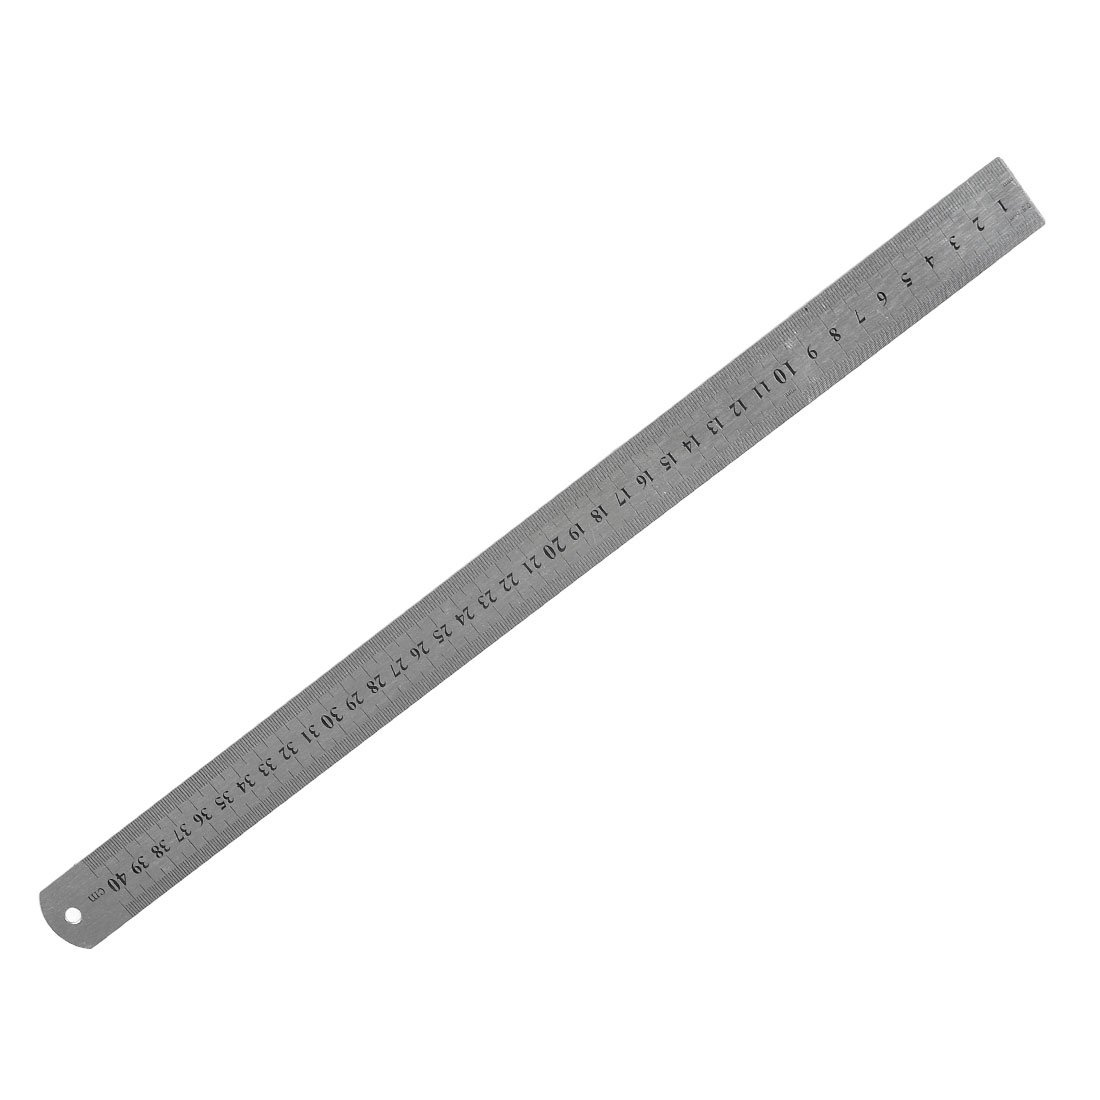 New And Hot Stainless Steel 16 Inch Straight Ruler